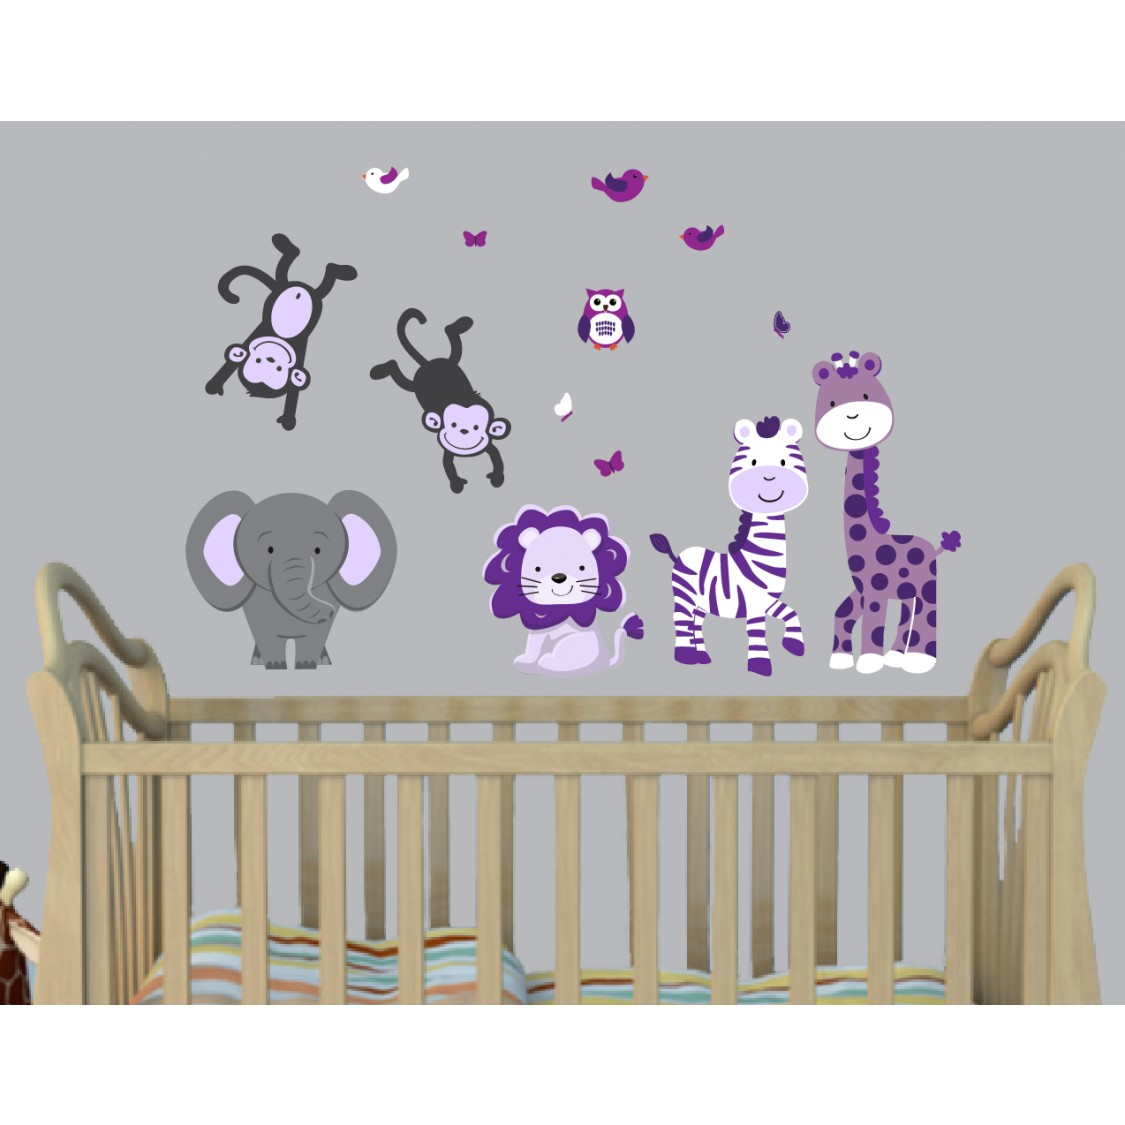 Gray Jungle Wall Murals With Giraffe Wall Decals For Children